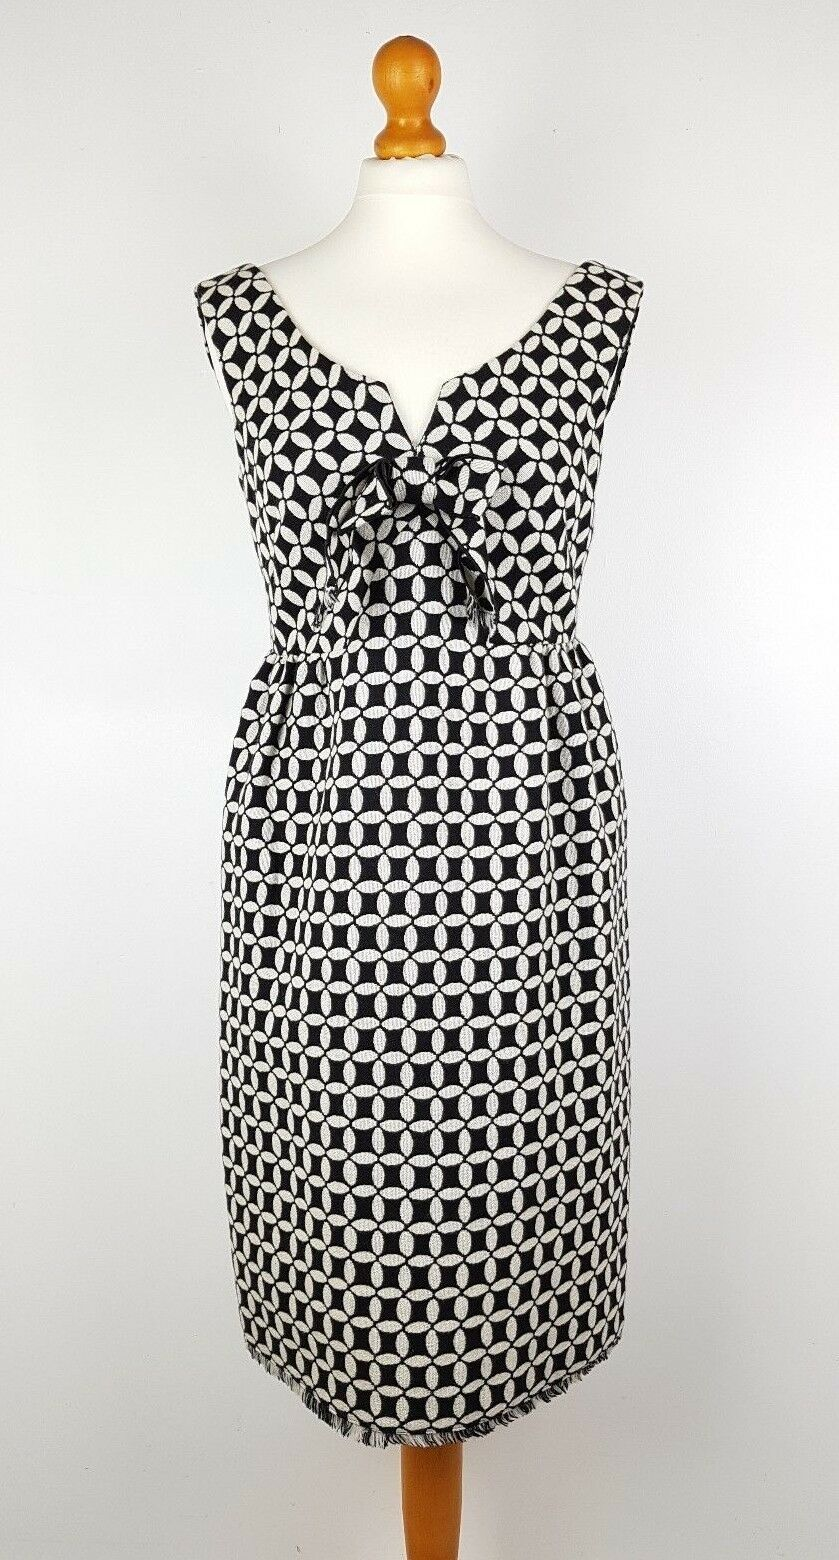 Anna Sui schwarz Weiß Monochrome 60s Retro Empire Line Cashwool Dress UK 10 US 6